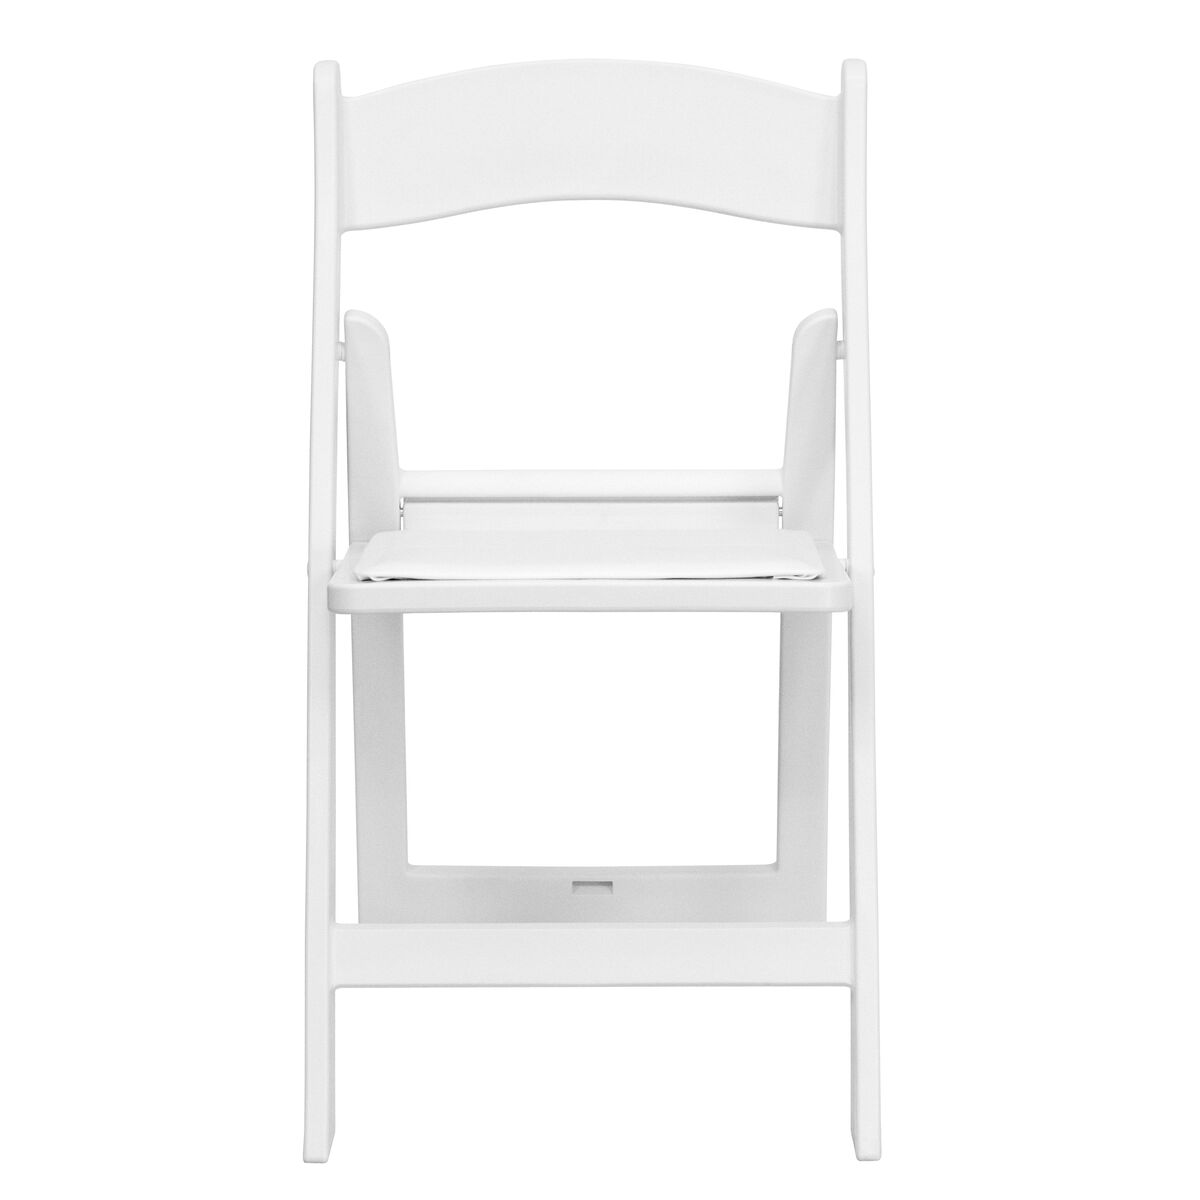 Wondrous Hercules Series 1000 Lb Capacity White Resin Folding Chair With White Vinyl Padded Seat Squirreltailoven Fun Painted Chair Ideas Images Squirreltailovenorg